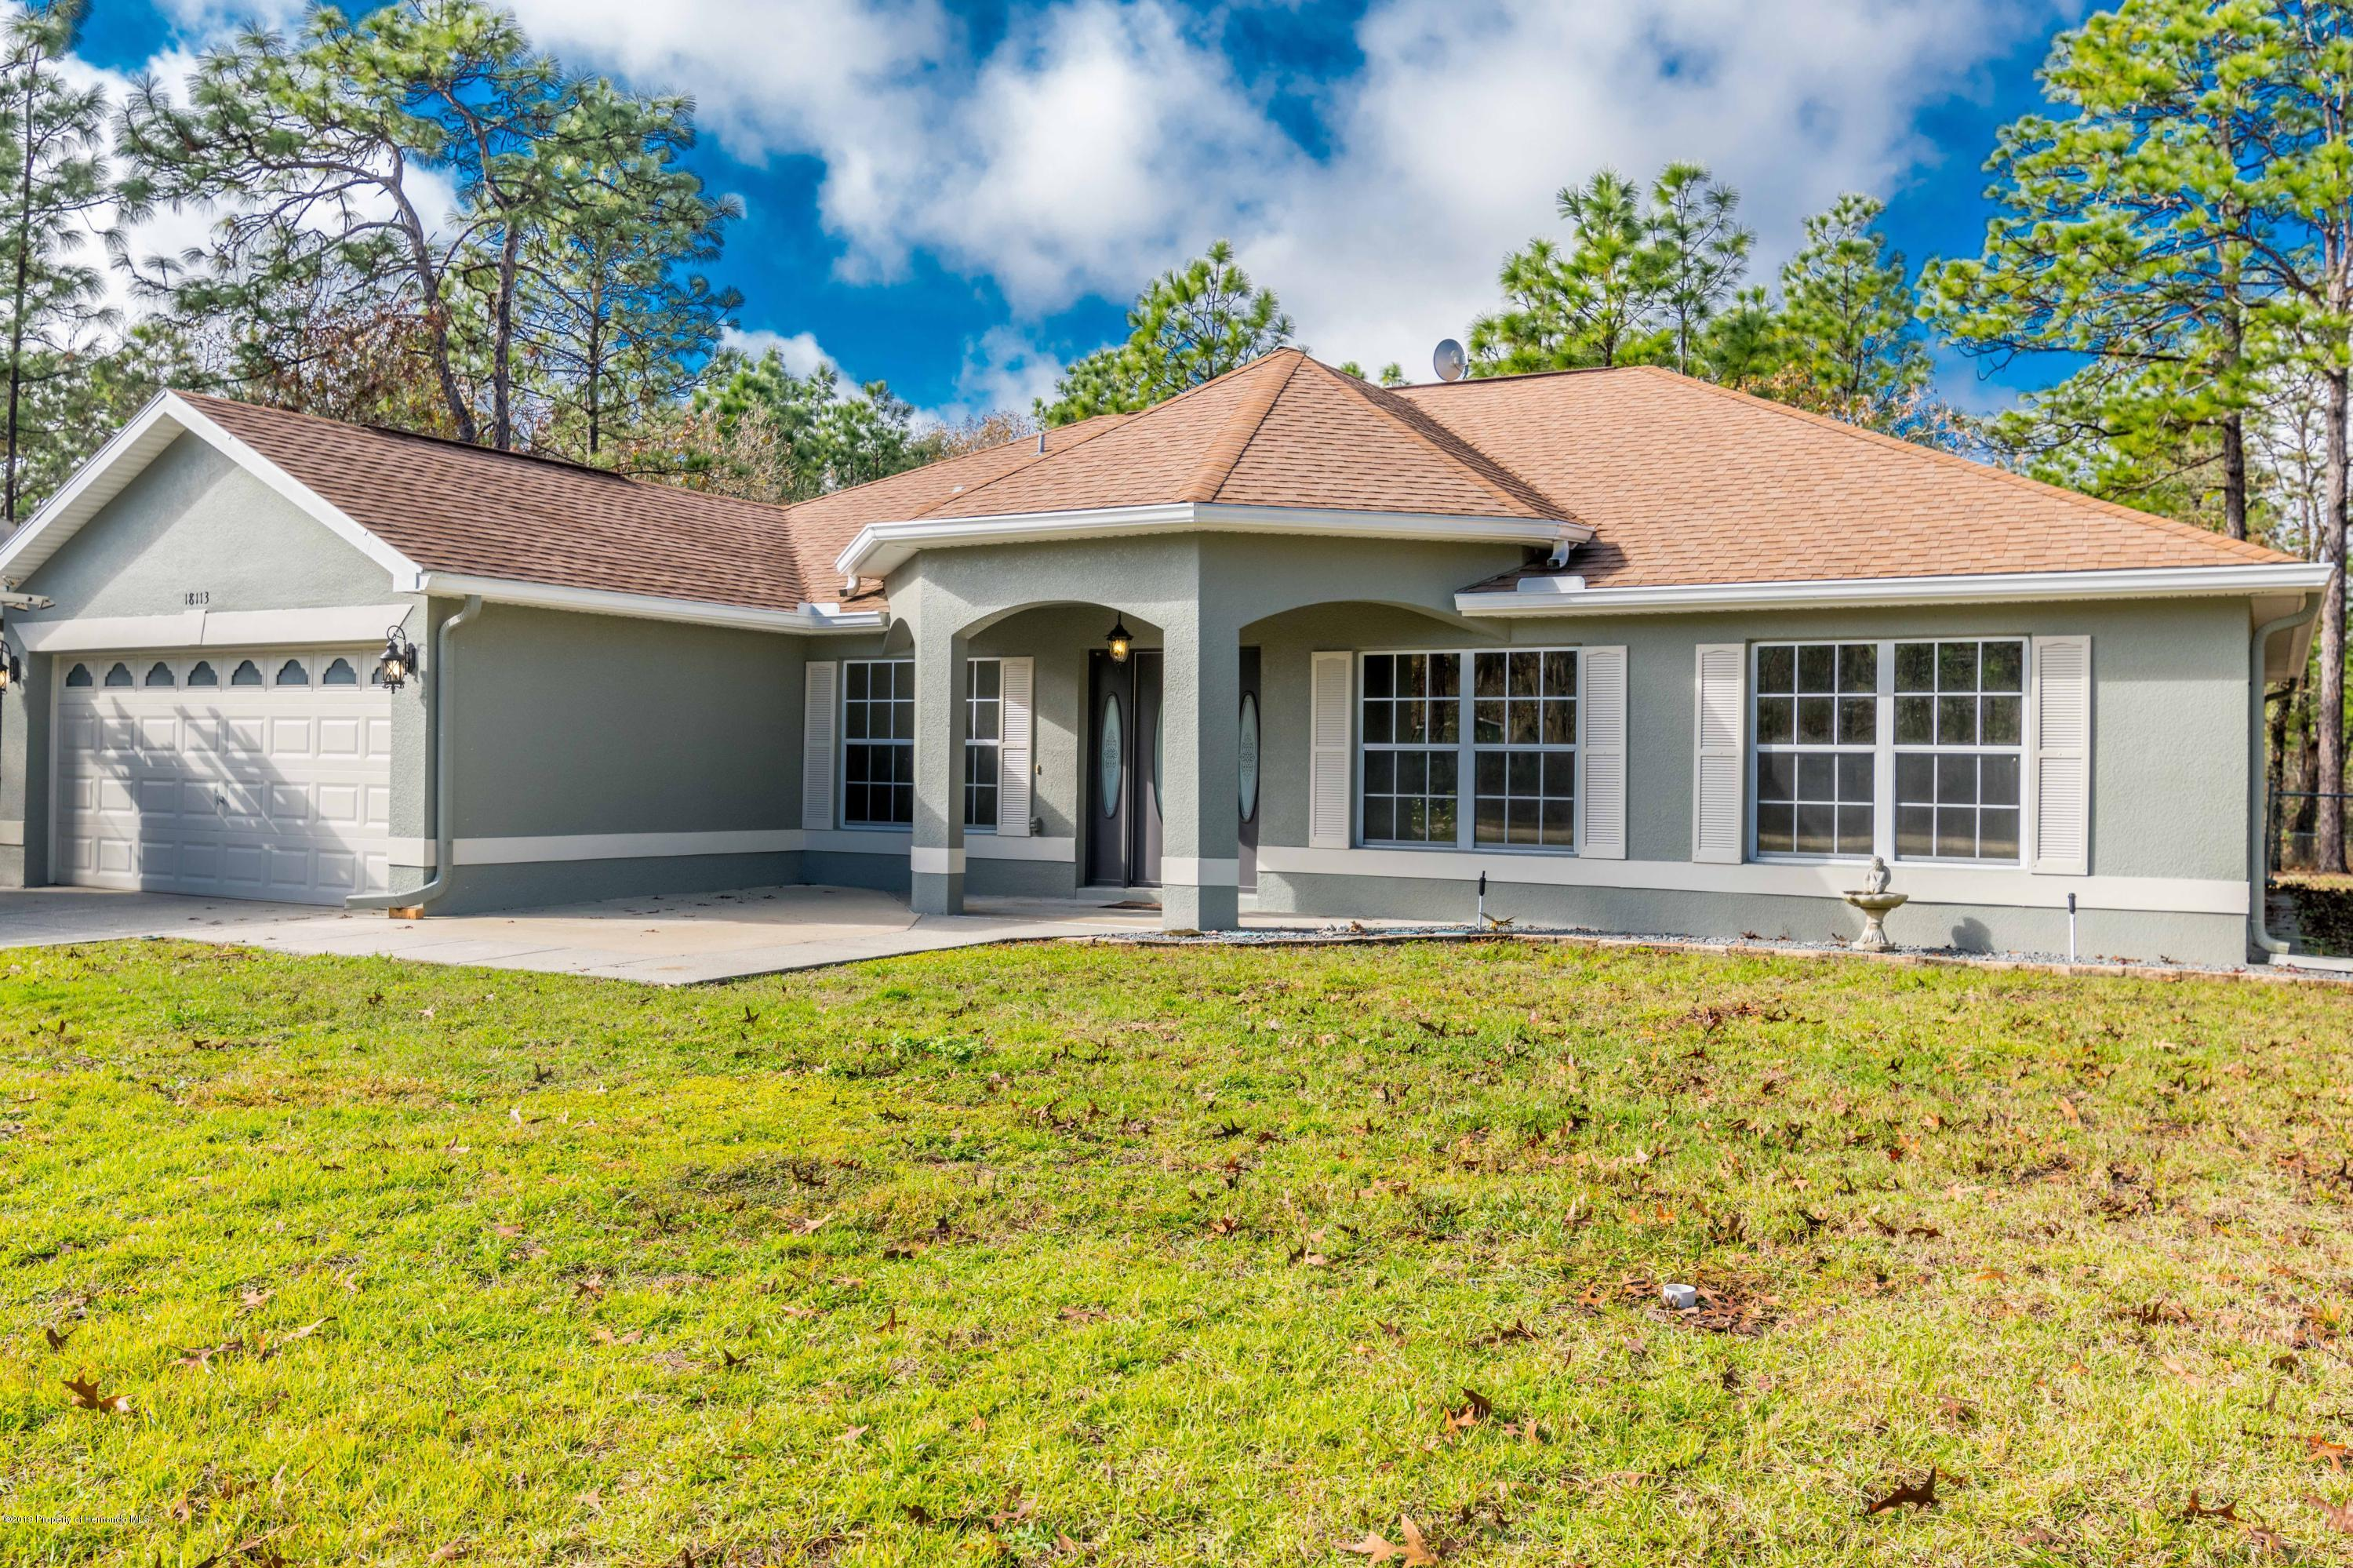 18113 Malibar Road, Weeki Wachee, Florida 34614, 3 Bedrooms Bedrooms, ,2 BathroomsBathrooms,Residential,For Sale,Malibar,2206107